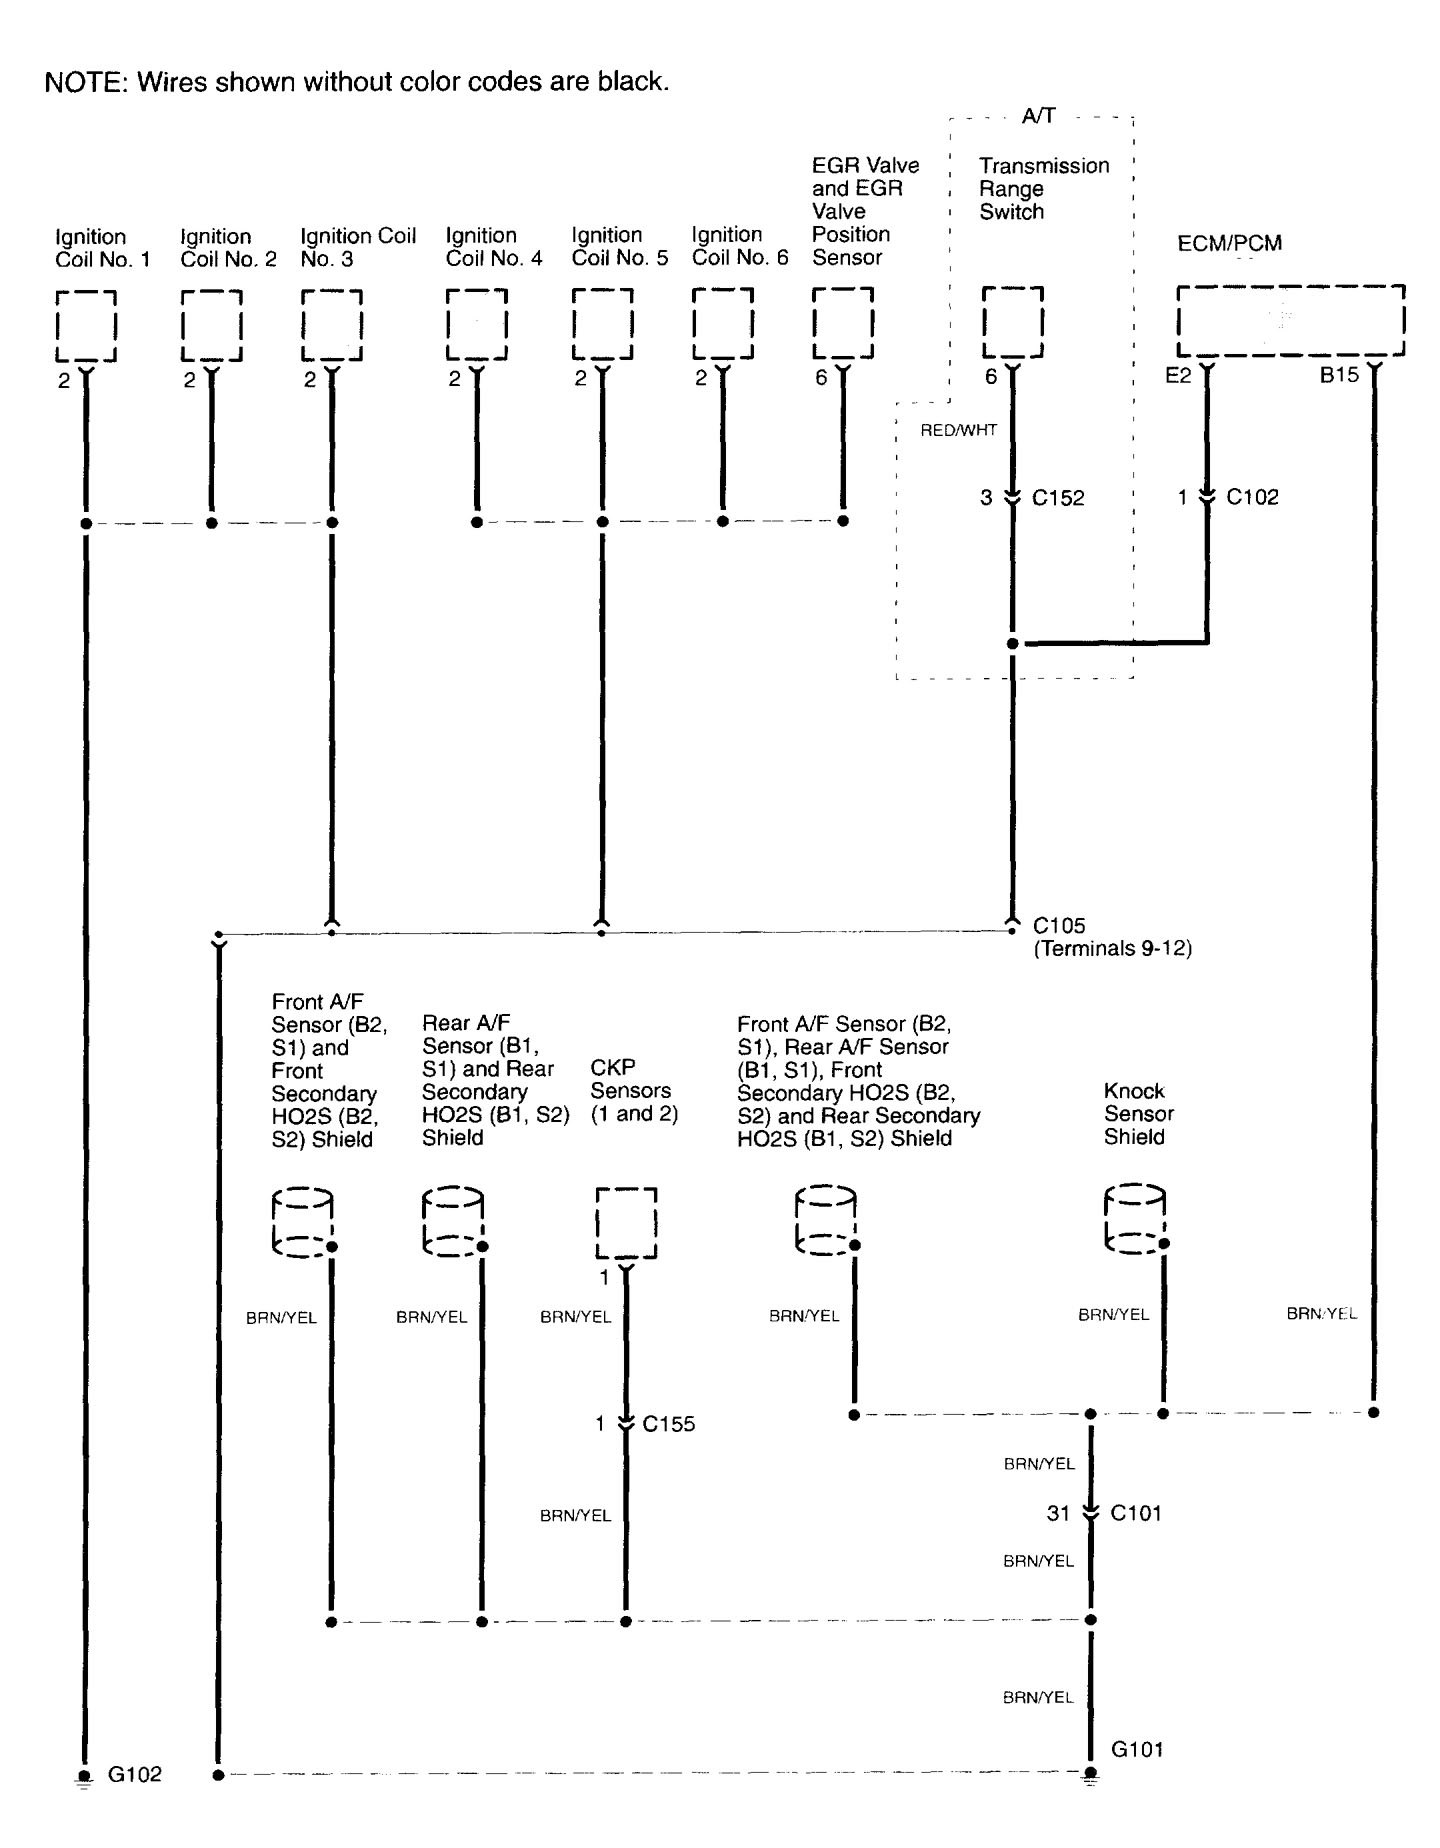 acura tl wiring diagram ground distribution v1 1 2003 2003 acura cl diagram 2003 acura cl stereo wiring diagram \u2022 free  at pacquiaovsvargaslive.co